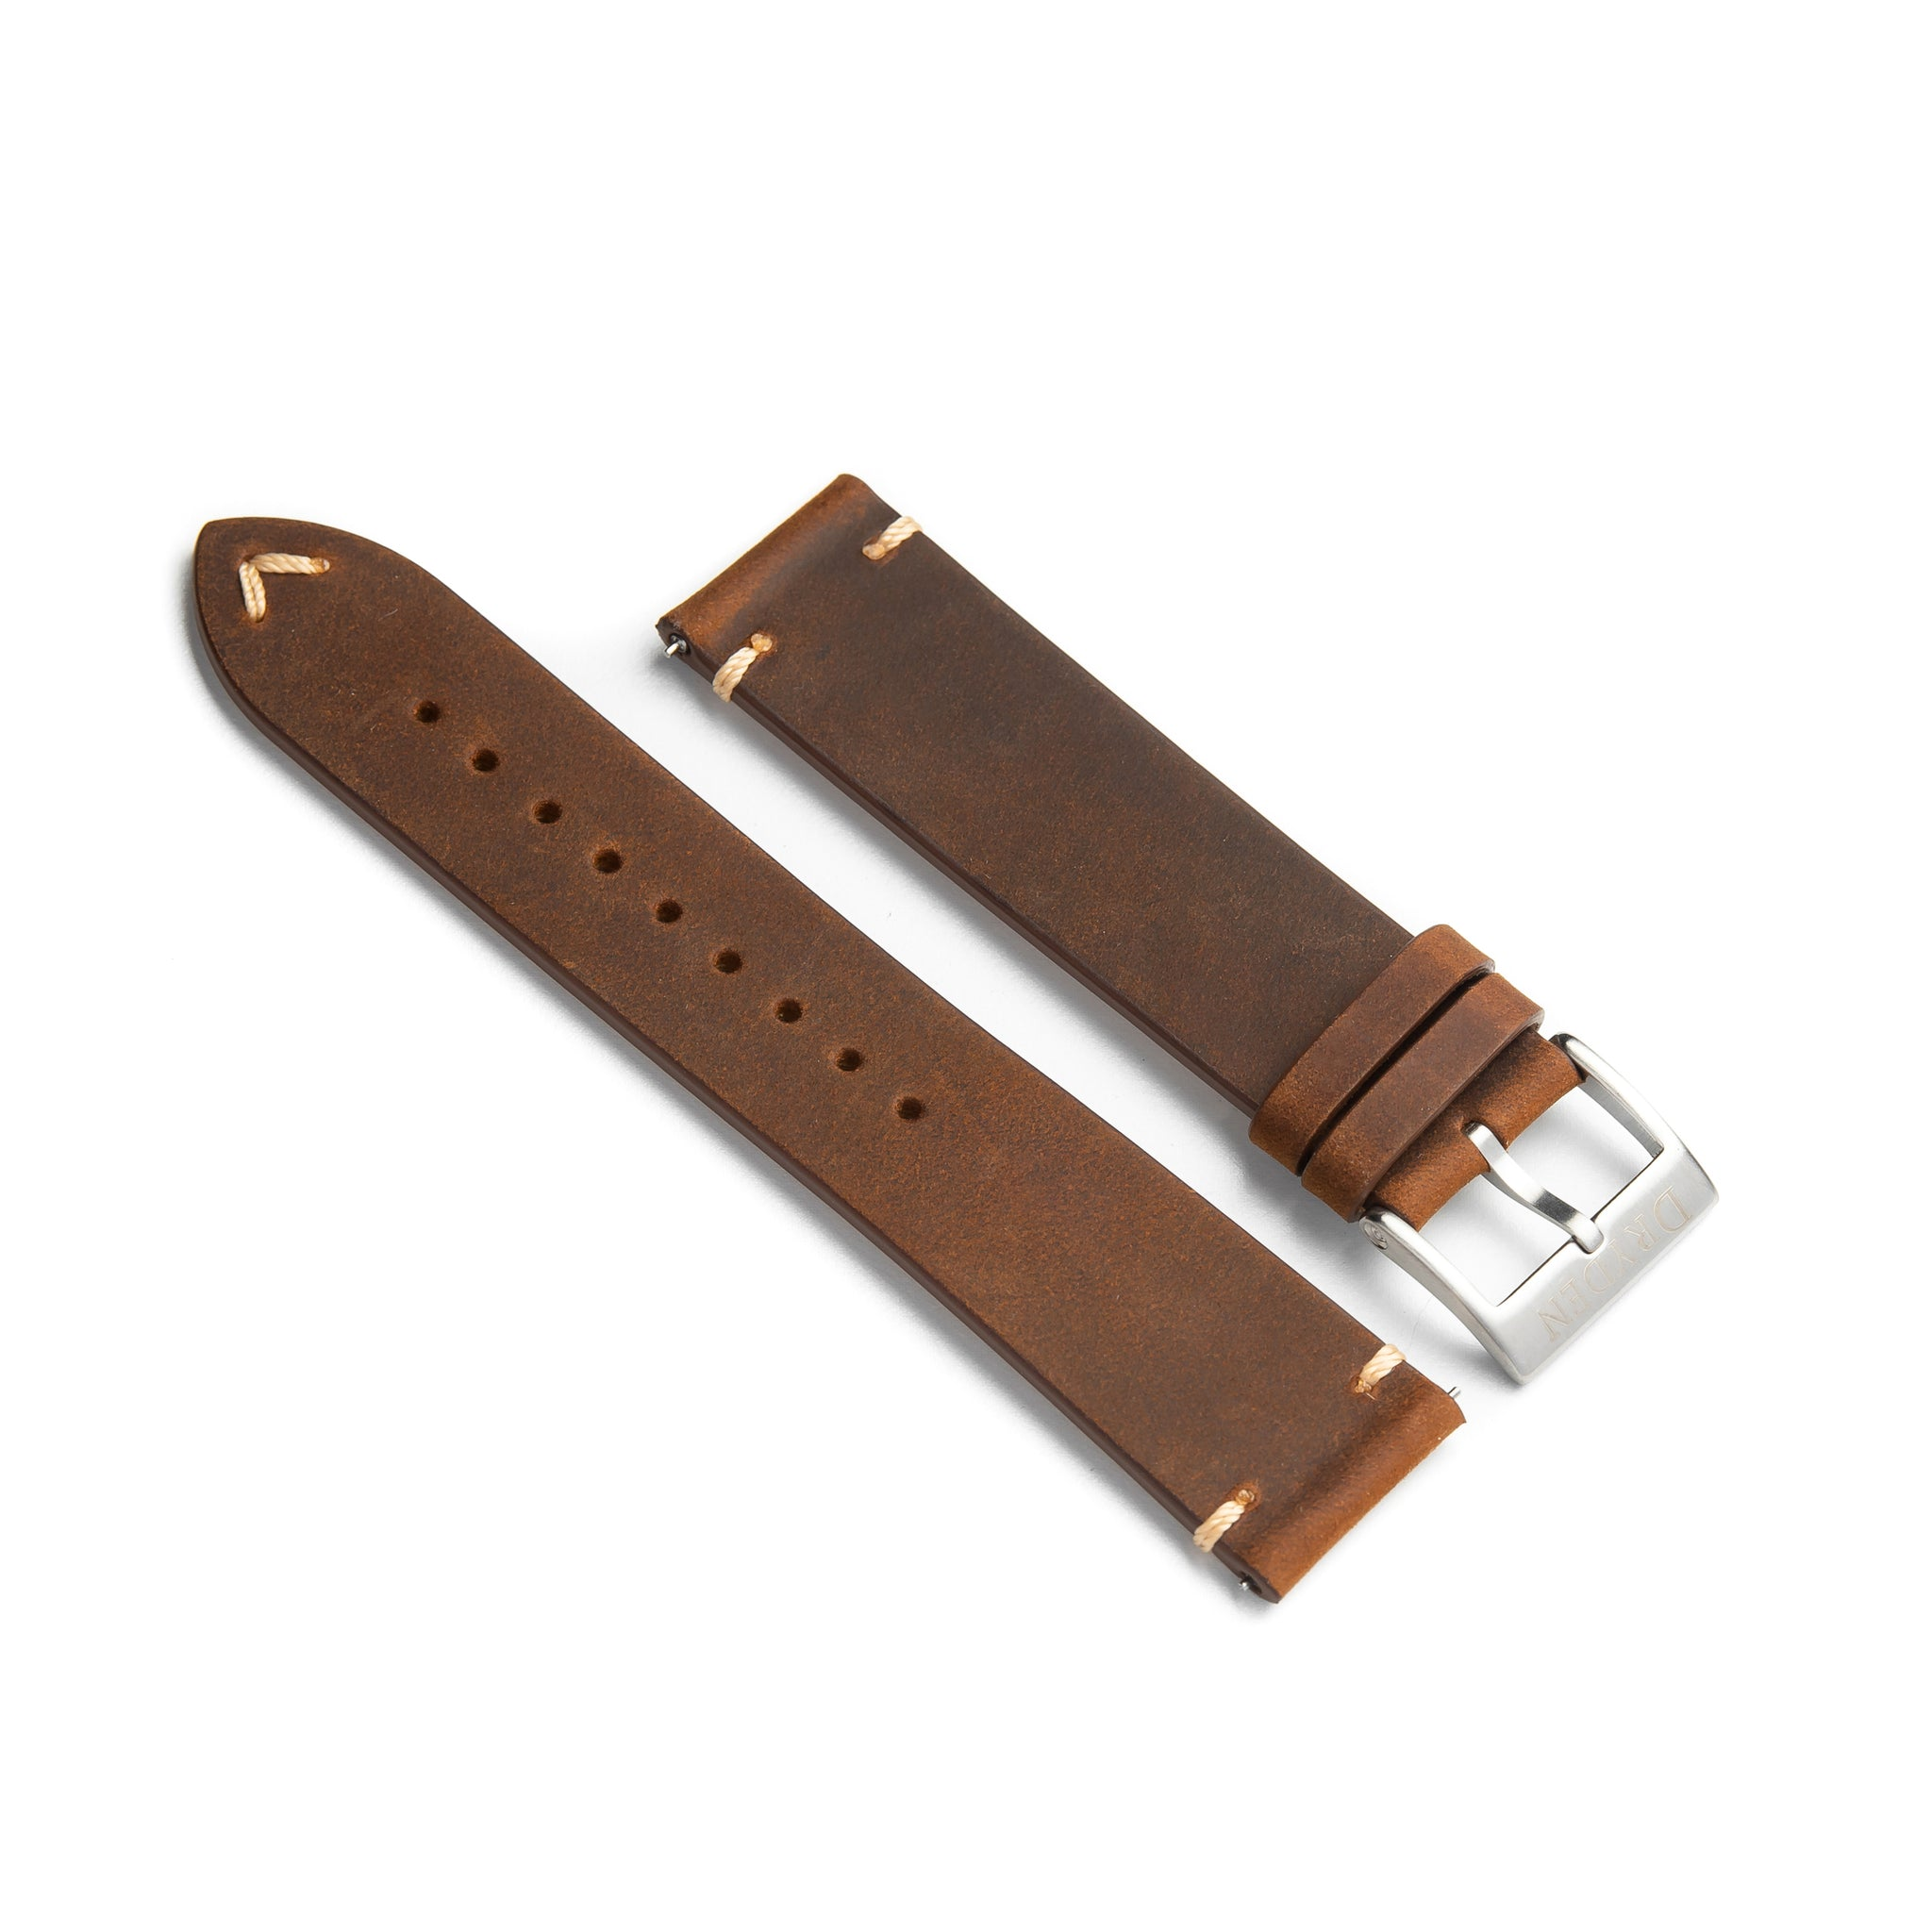 22mm Quick Release Simple Stitch Leather Watch Strap - Dark Brown